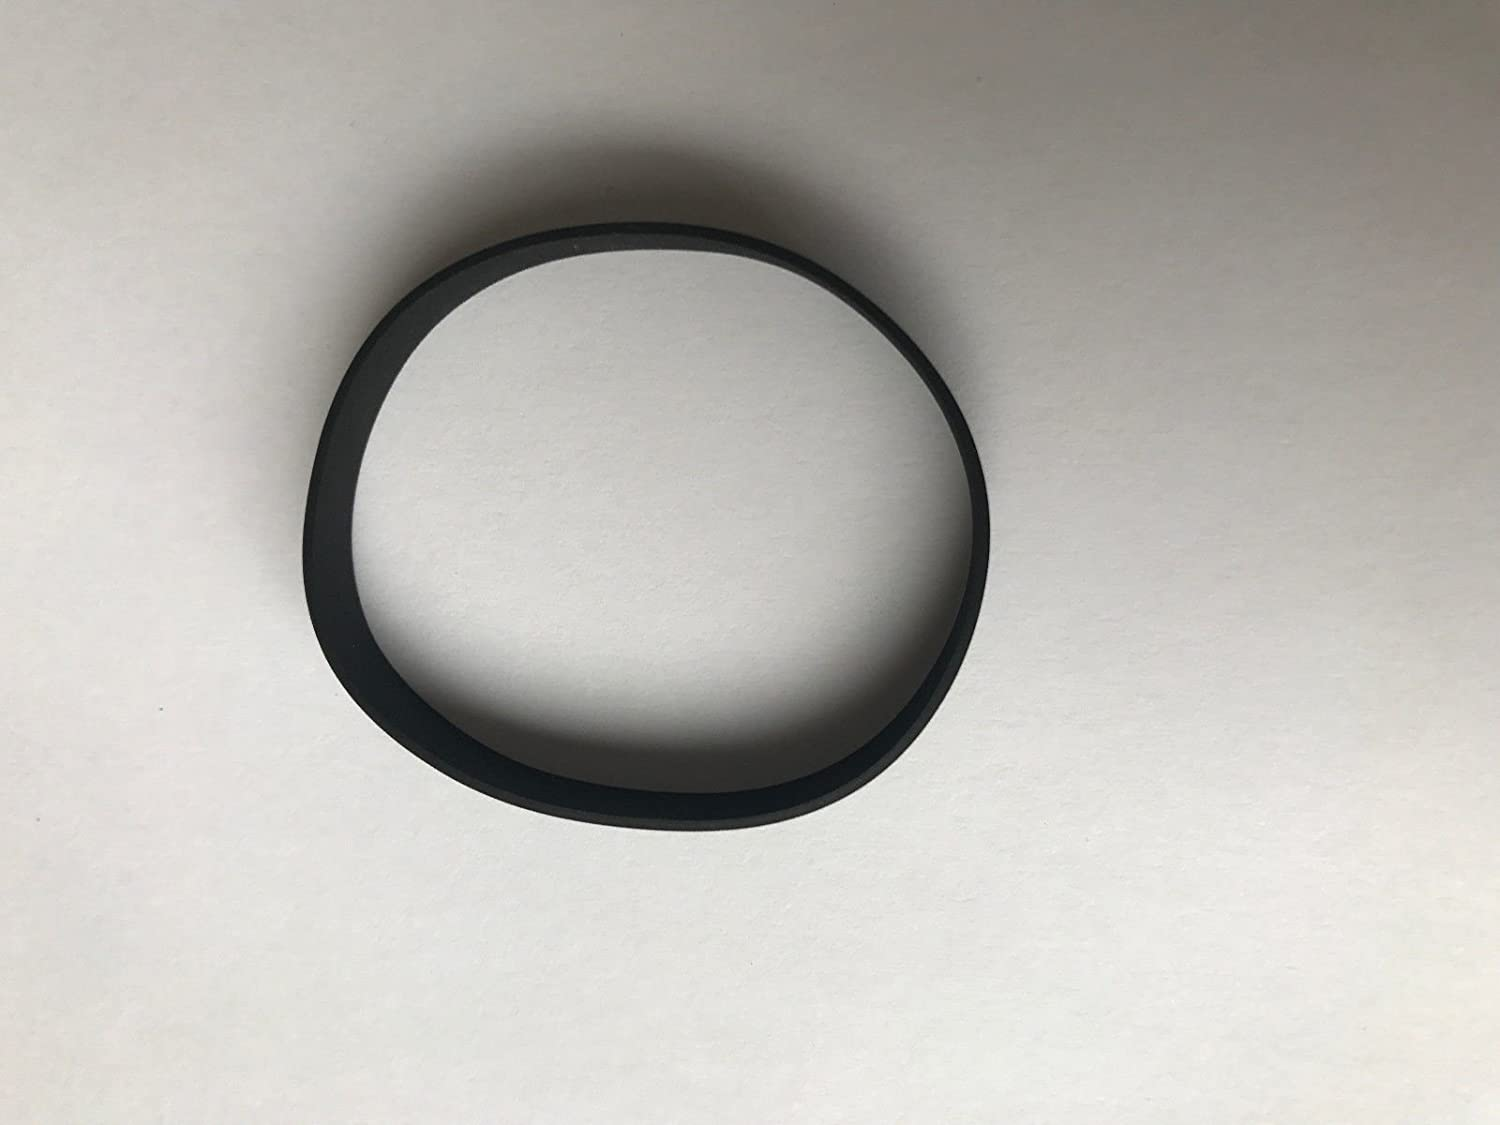 New Drive Sales Replacement Belt for use with TCM-74V [Alternative dealer] Sony